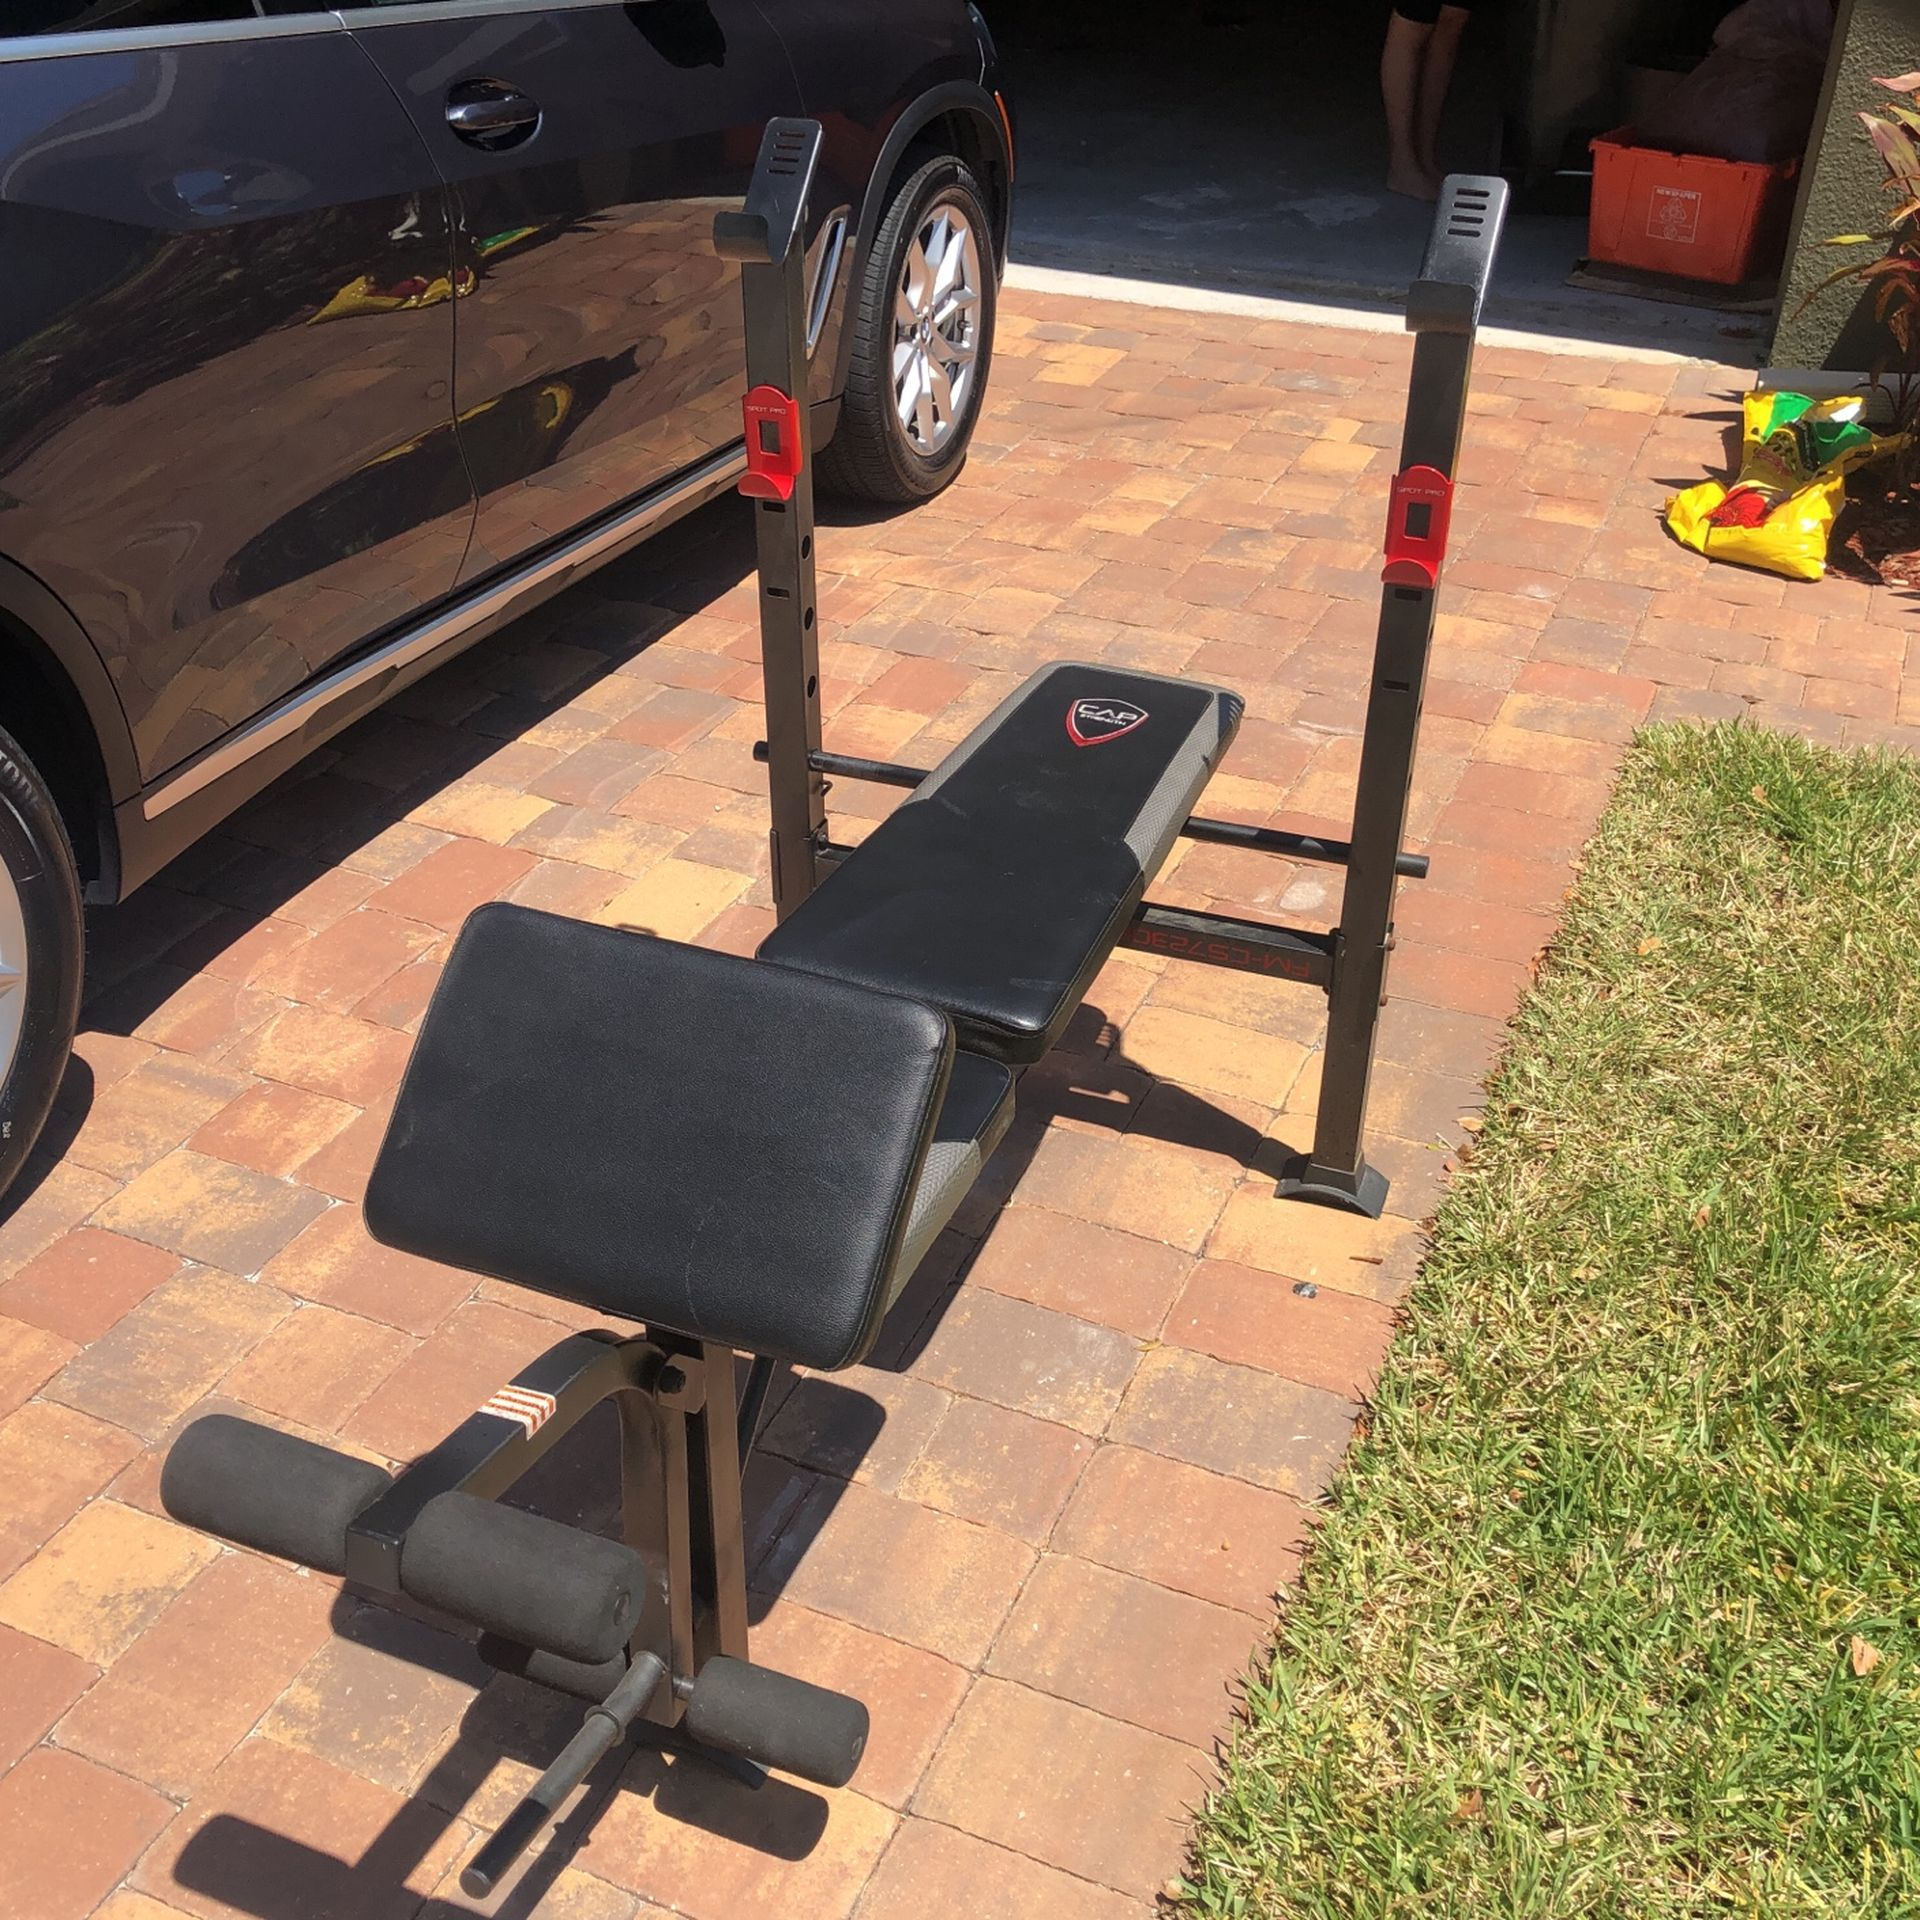 Bench Press (BMW NOT INCLUDED)